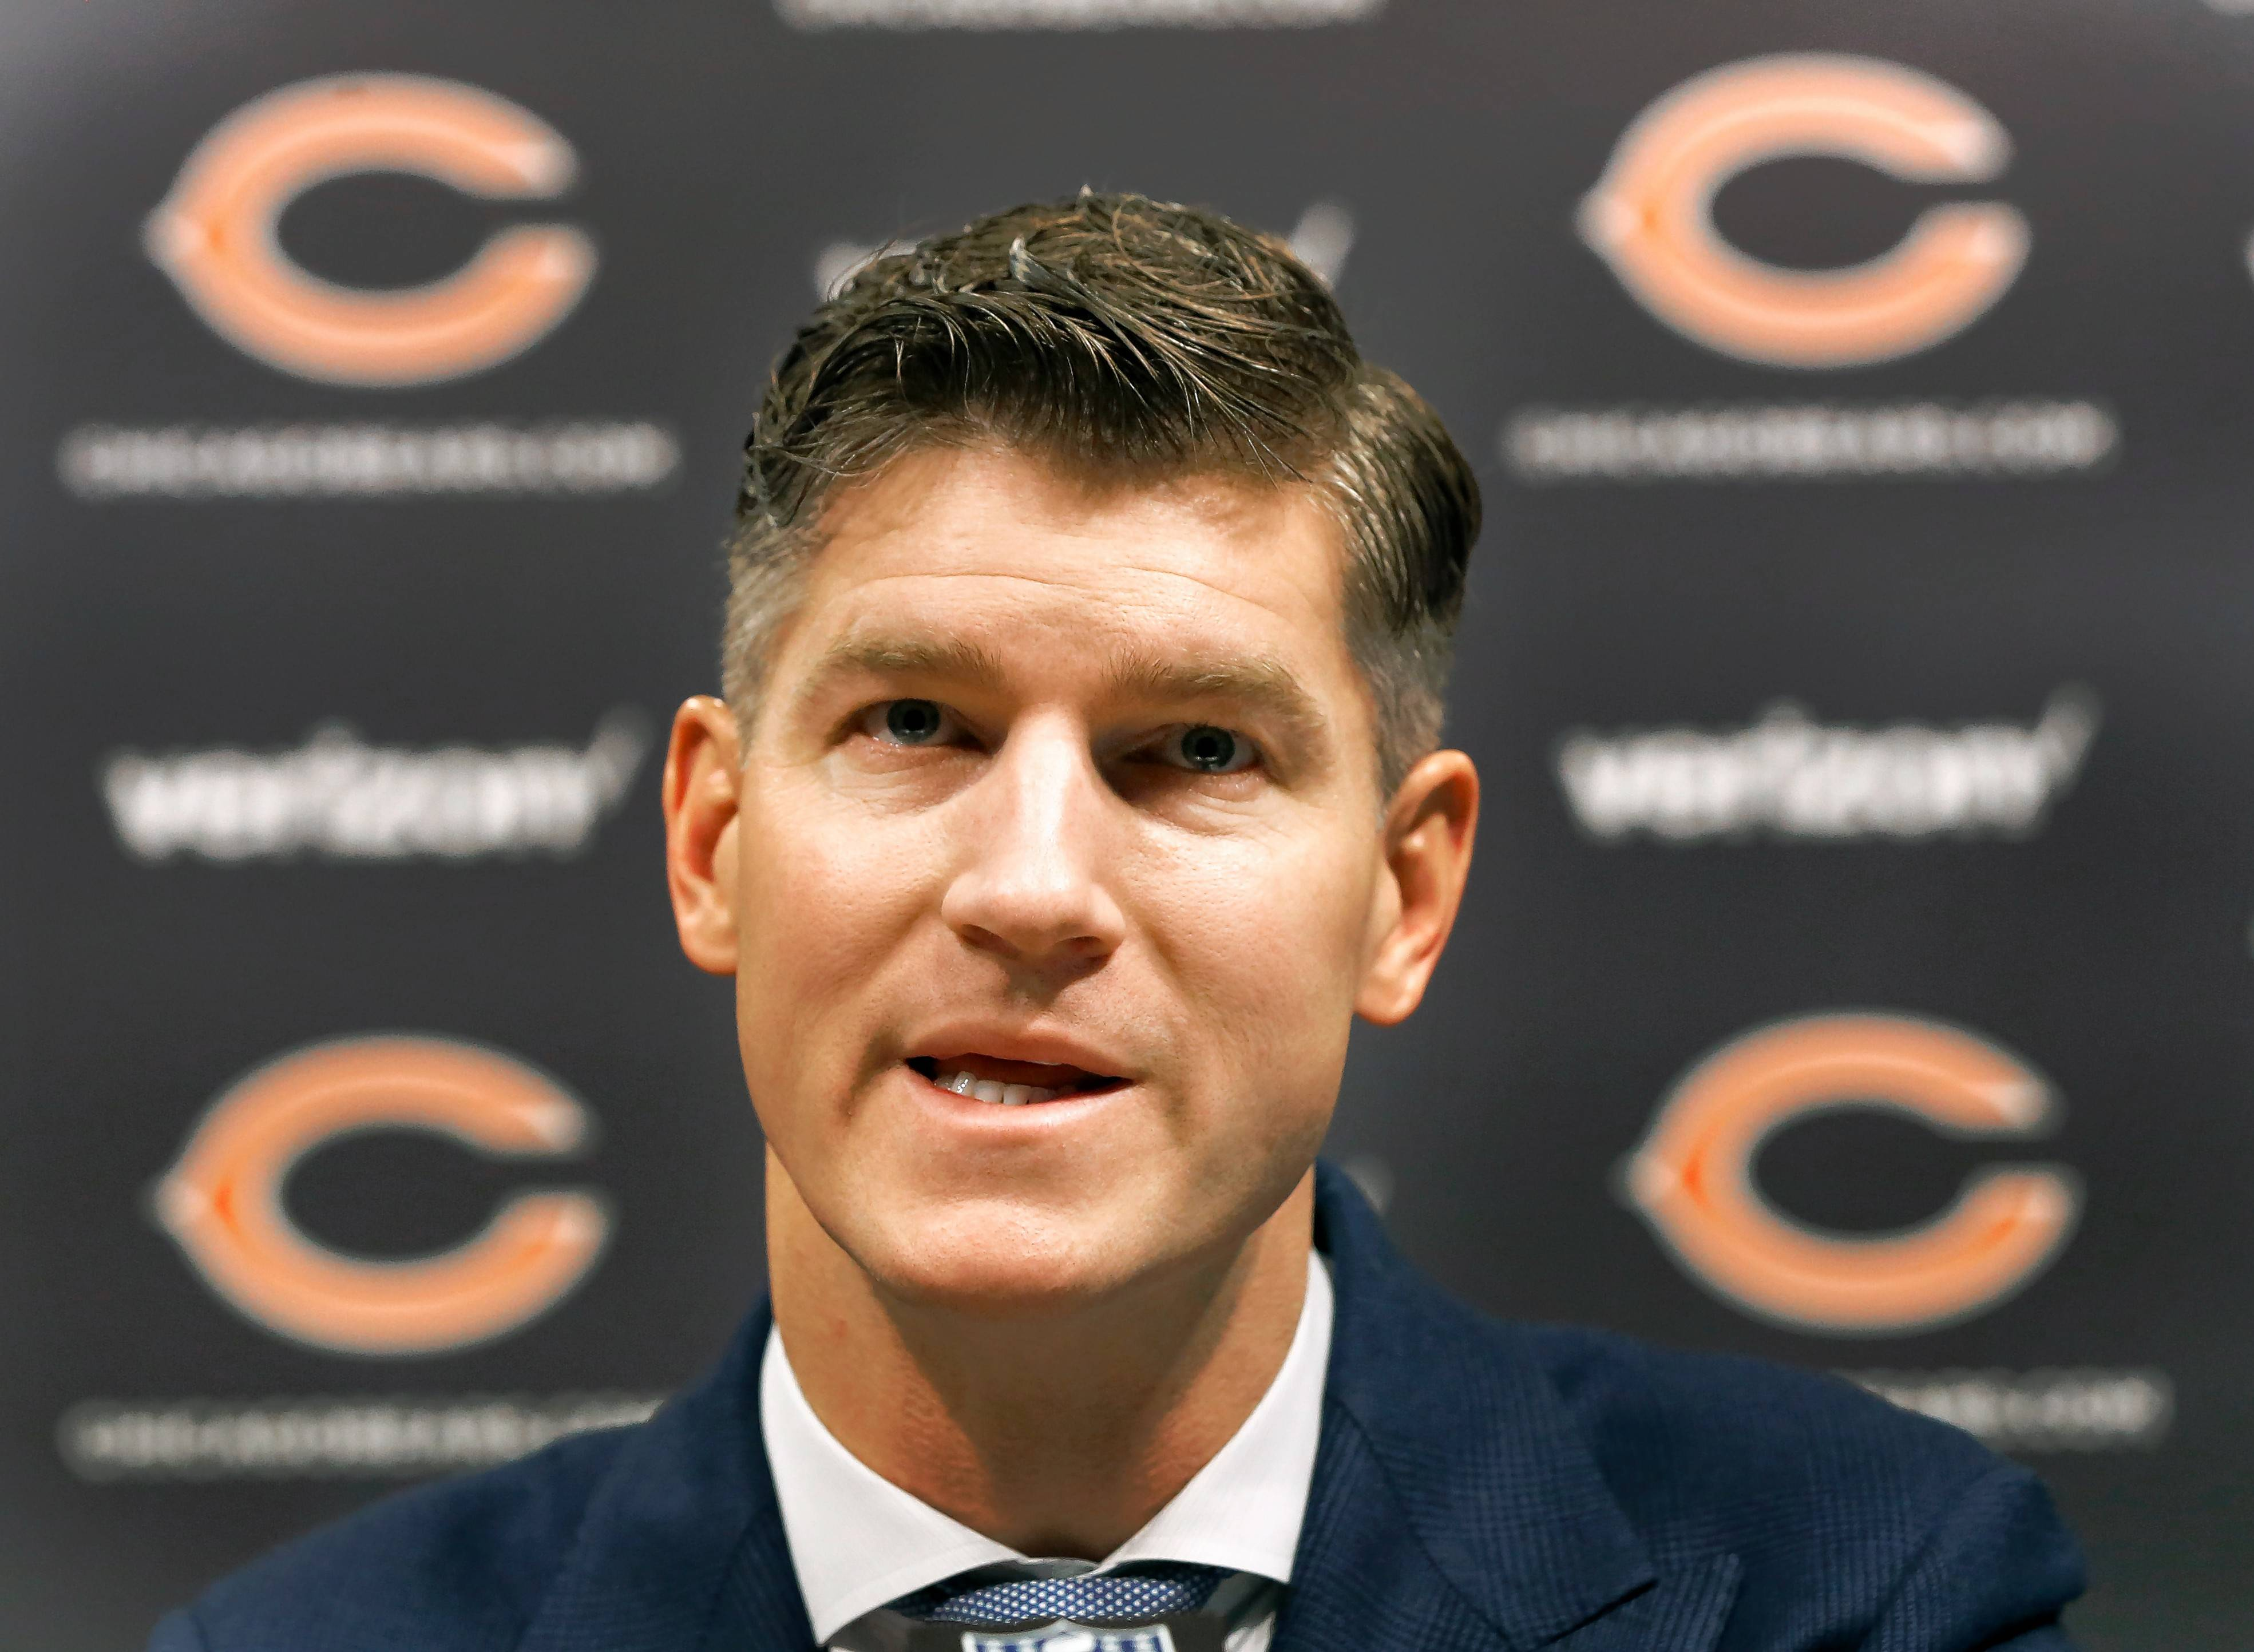 Minnesota Vikings defensive coordinator George Edwards Thursday became the second candidate to interview with GM Ryan Pace for the Bears' head-coaching vacancy.